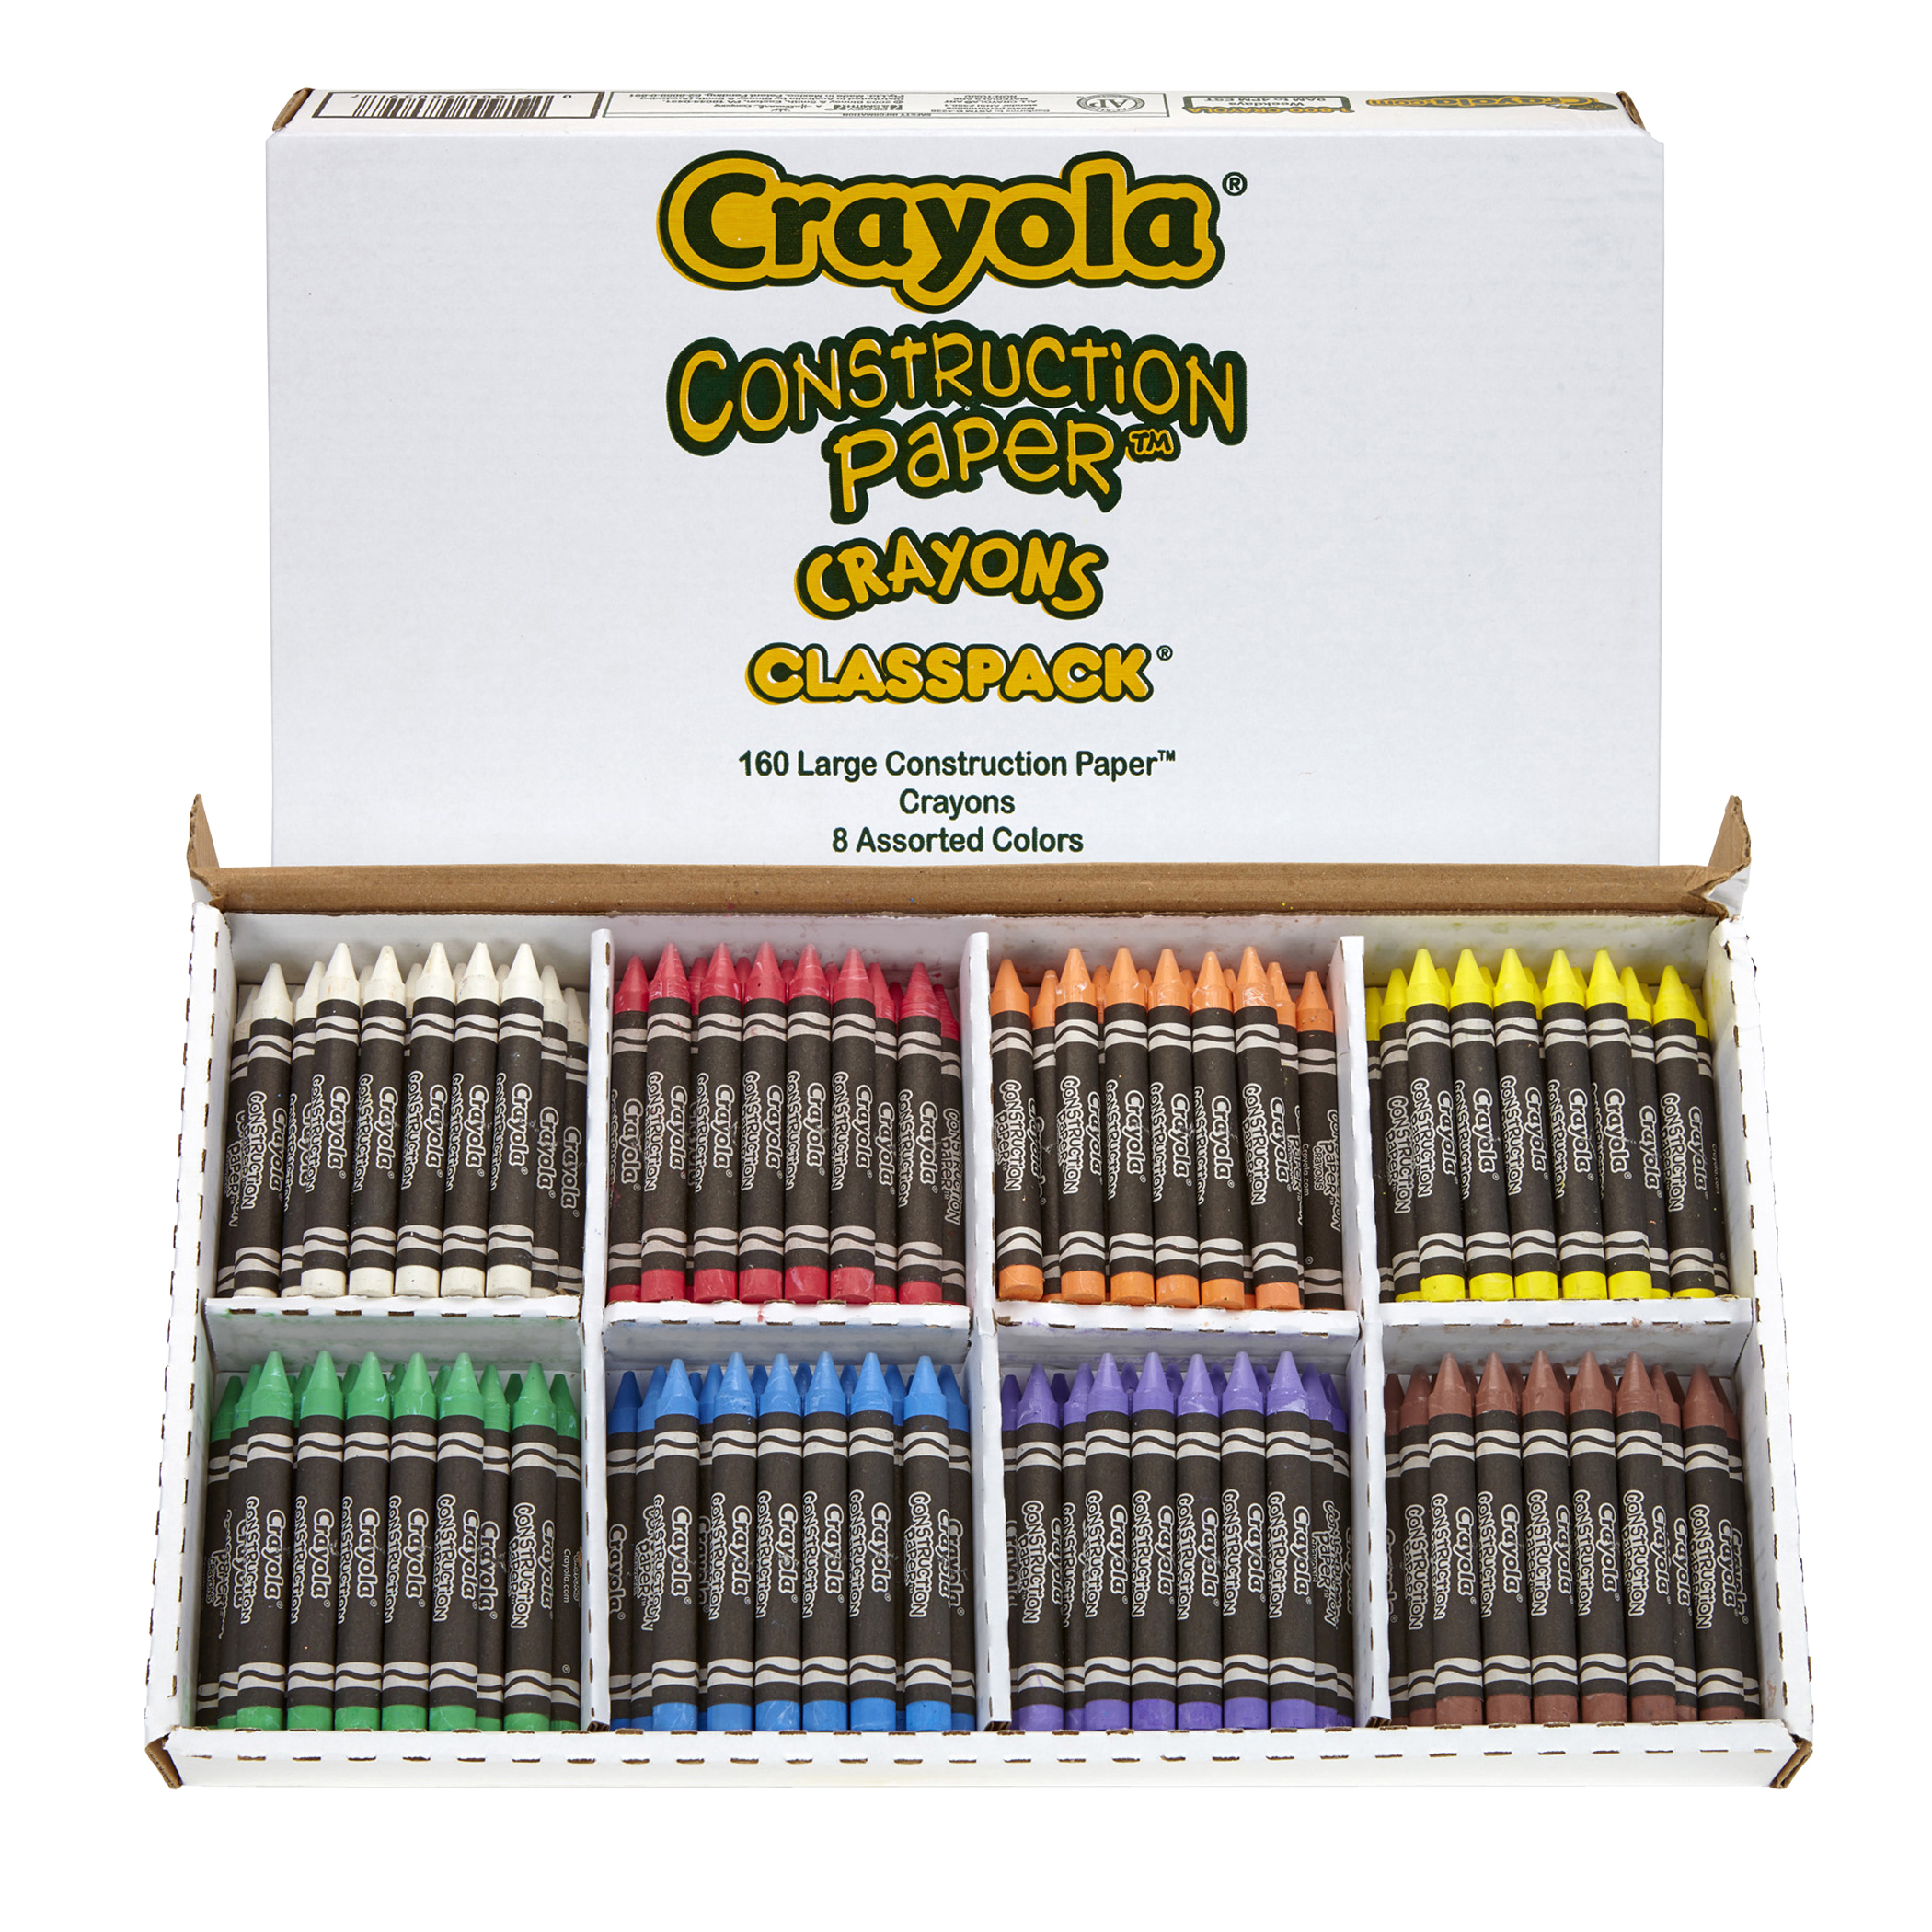 Crayola® Construction Paper Crayon Classpack, Pack of 160